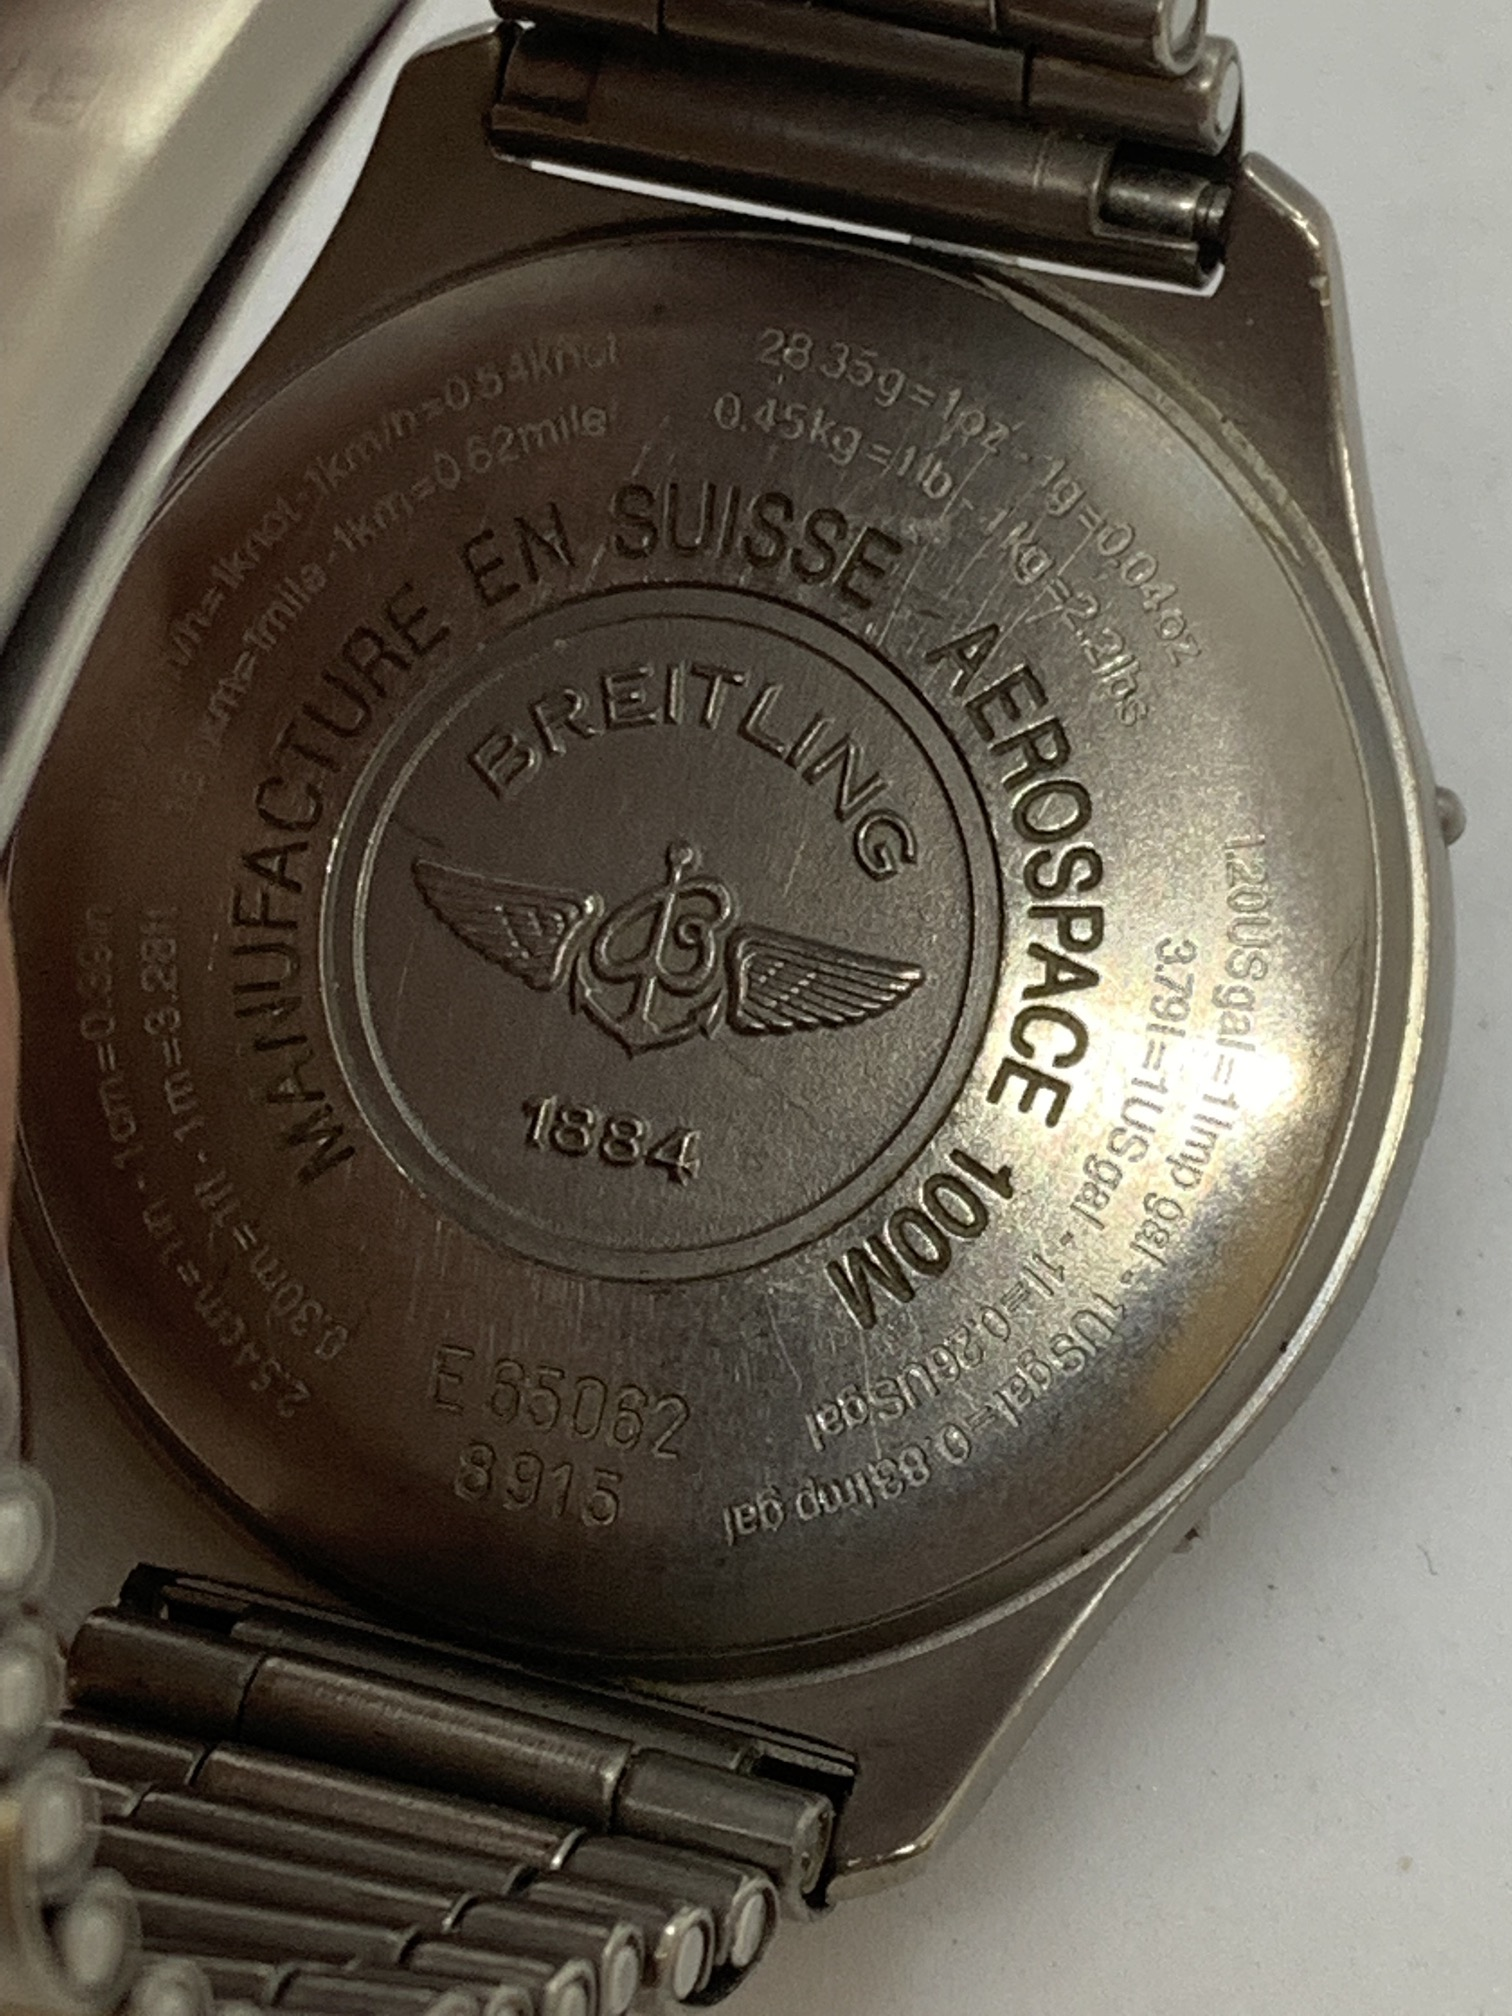 BREITLING TITANIUM WATCH A/F - Image 10 of 15